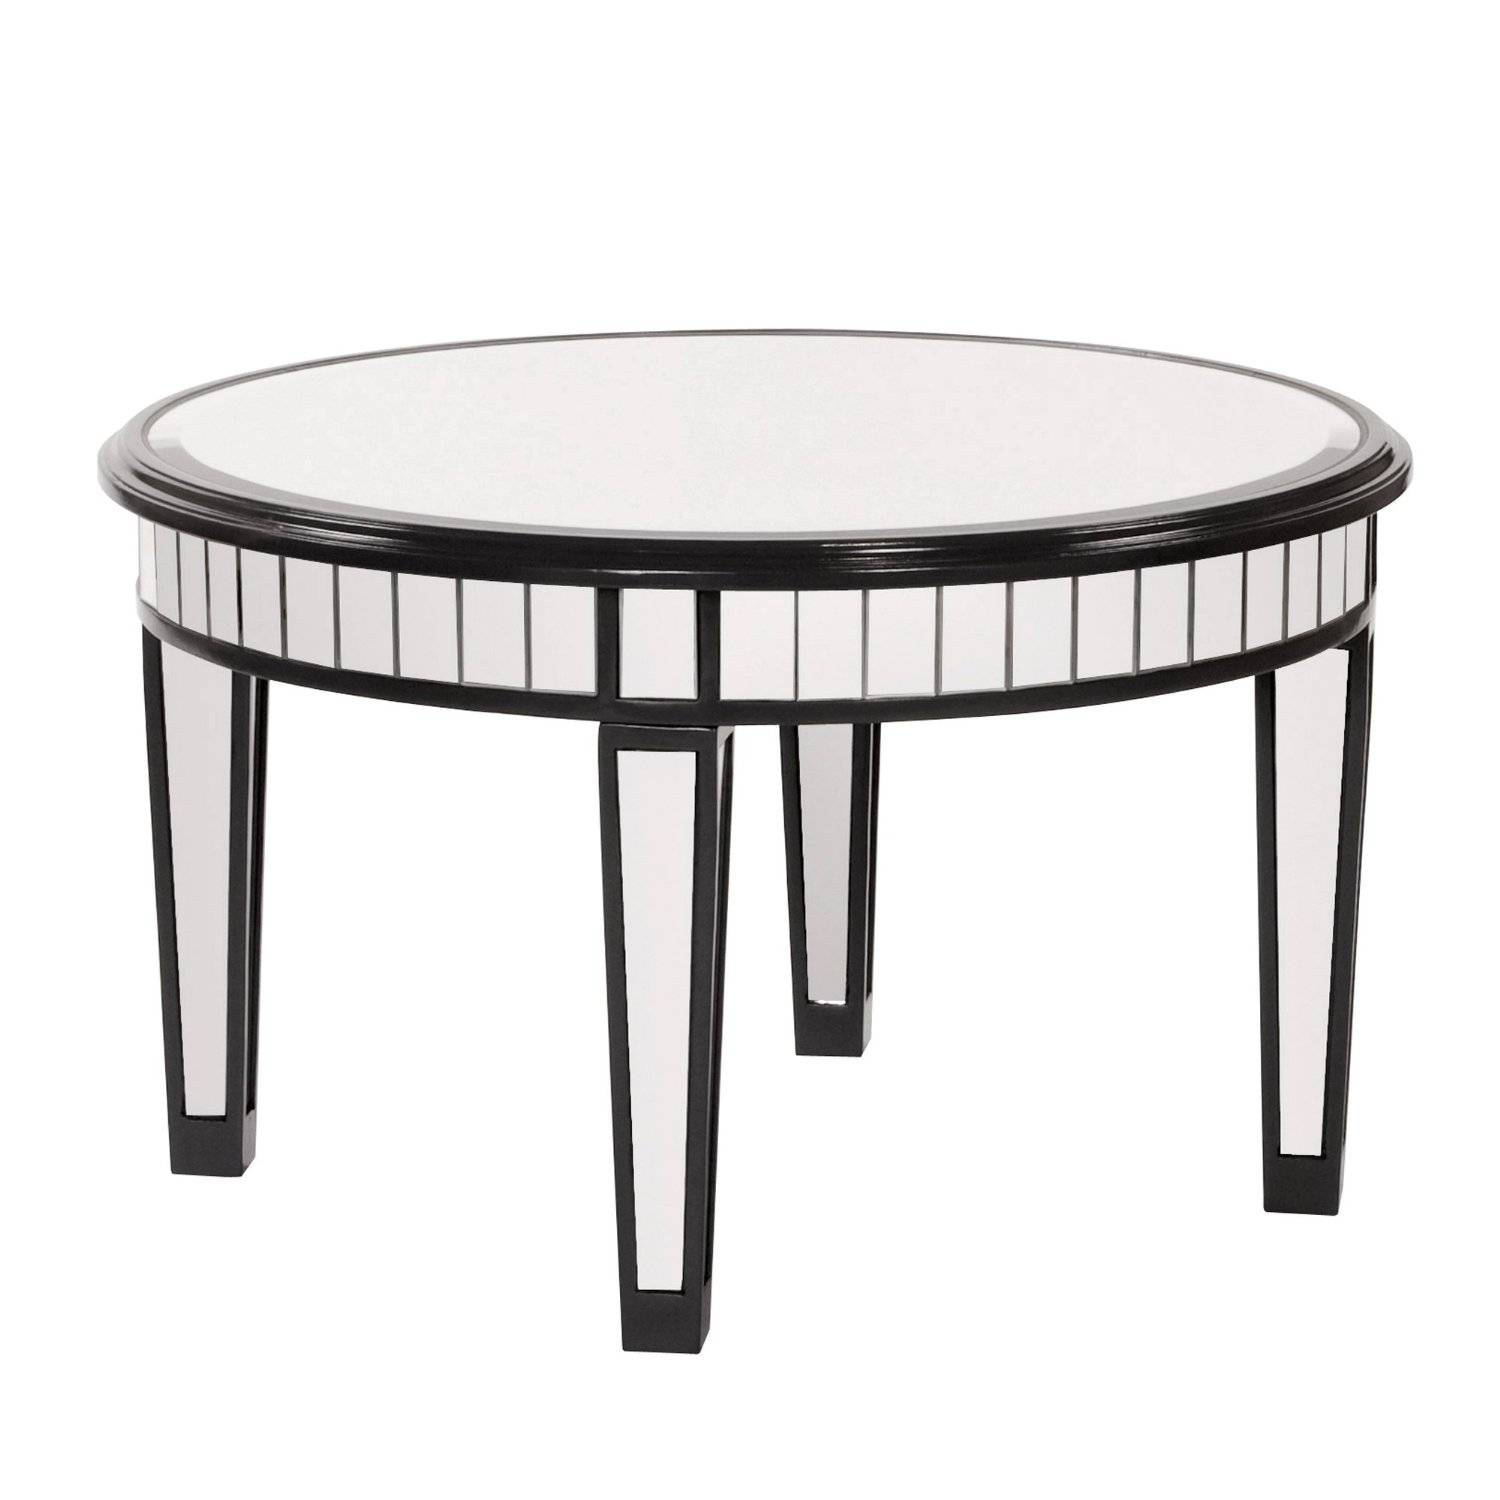 Coffee Table: Amazing Circle Coffee Table Ideas Round Black Coffee in White Circle Coffee Tables (Image 8 of 30)